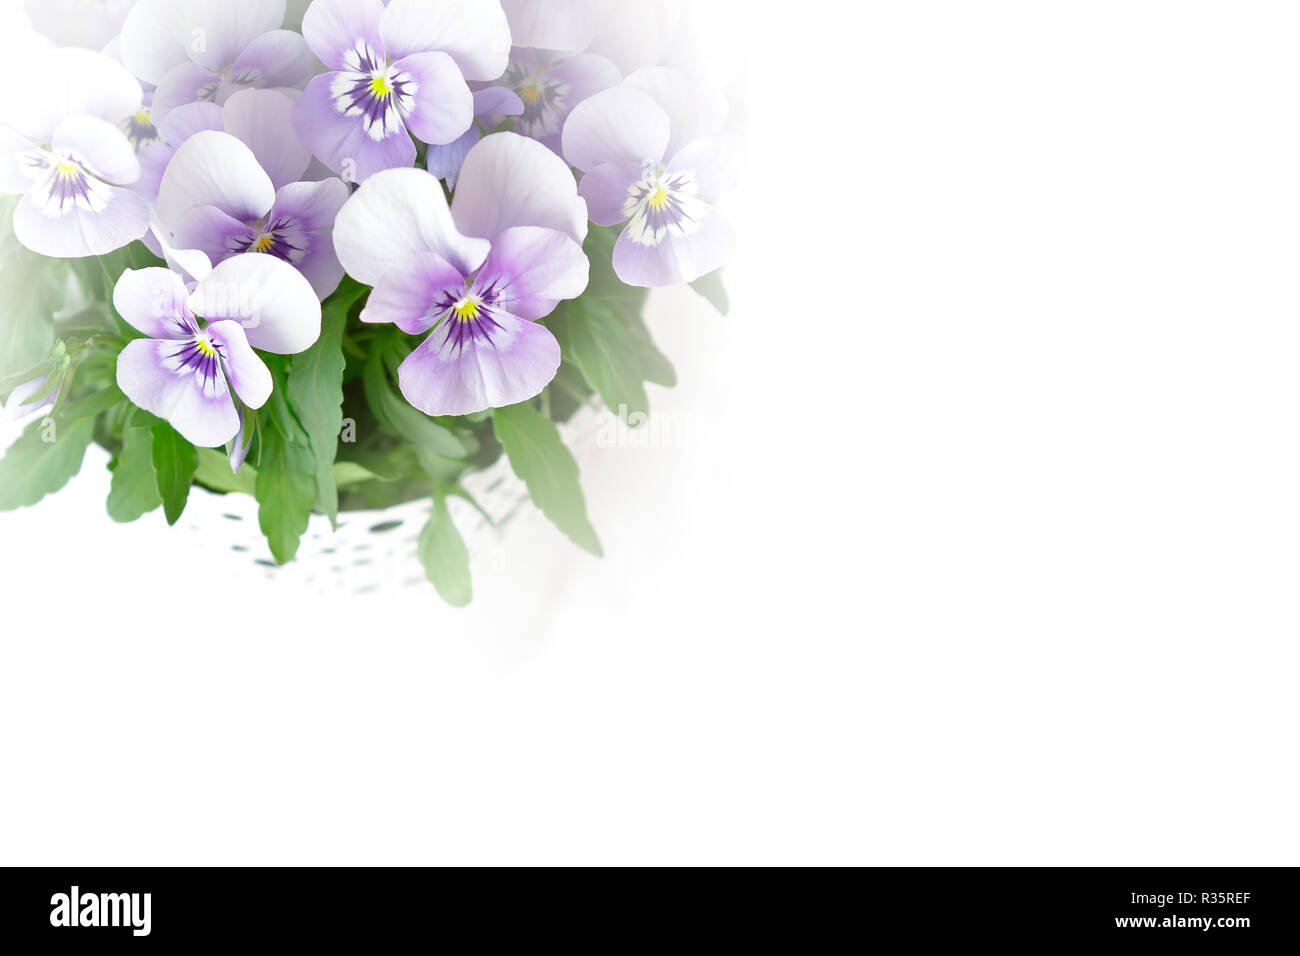 Pansy flowers in shades of lilac, pink and purple against white, nostalgic and romantic background template with copy space Stock Photo